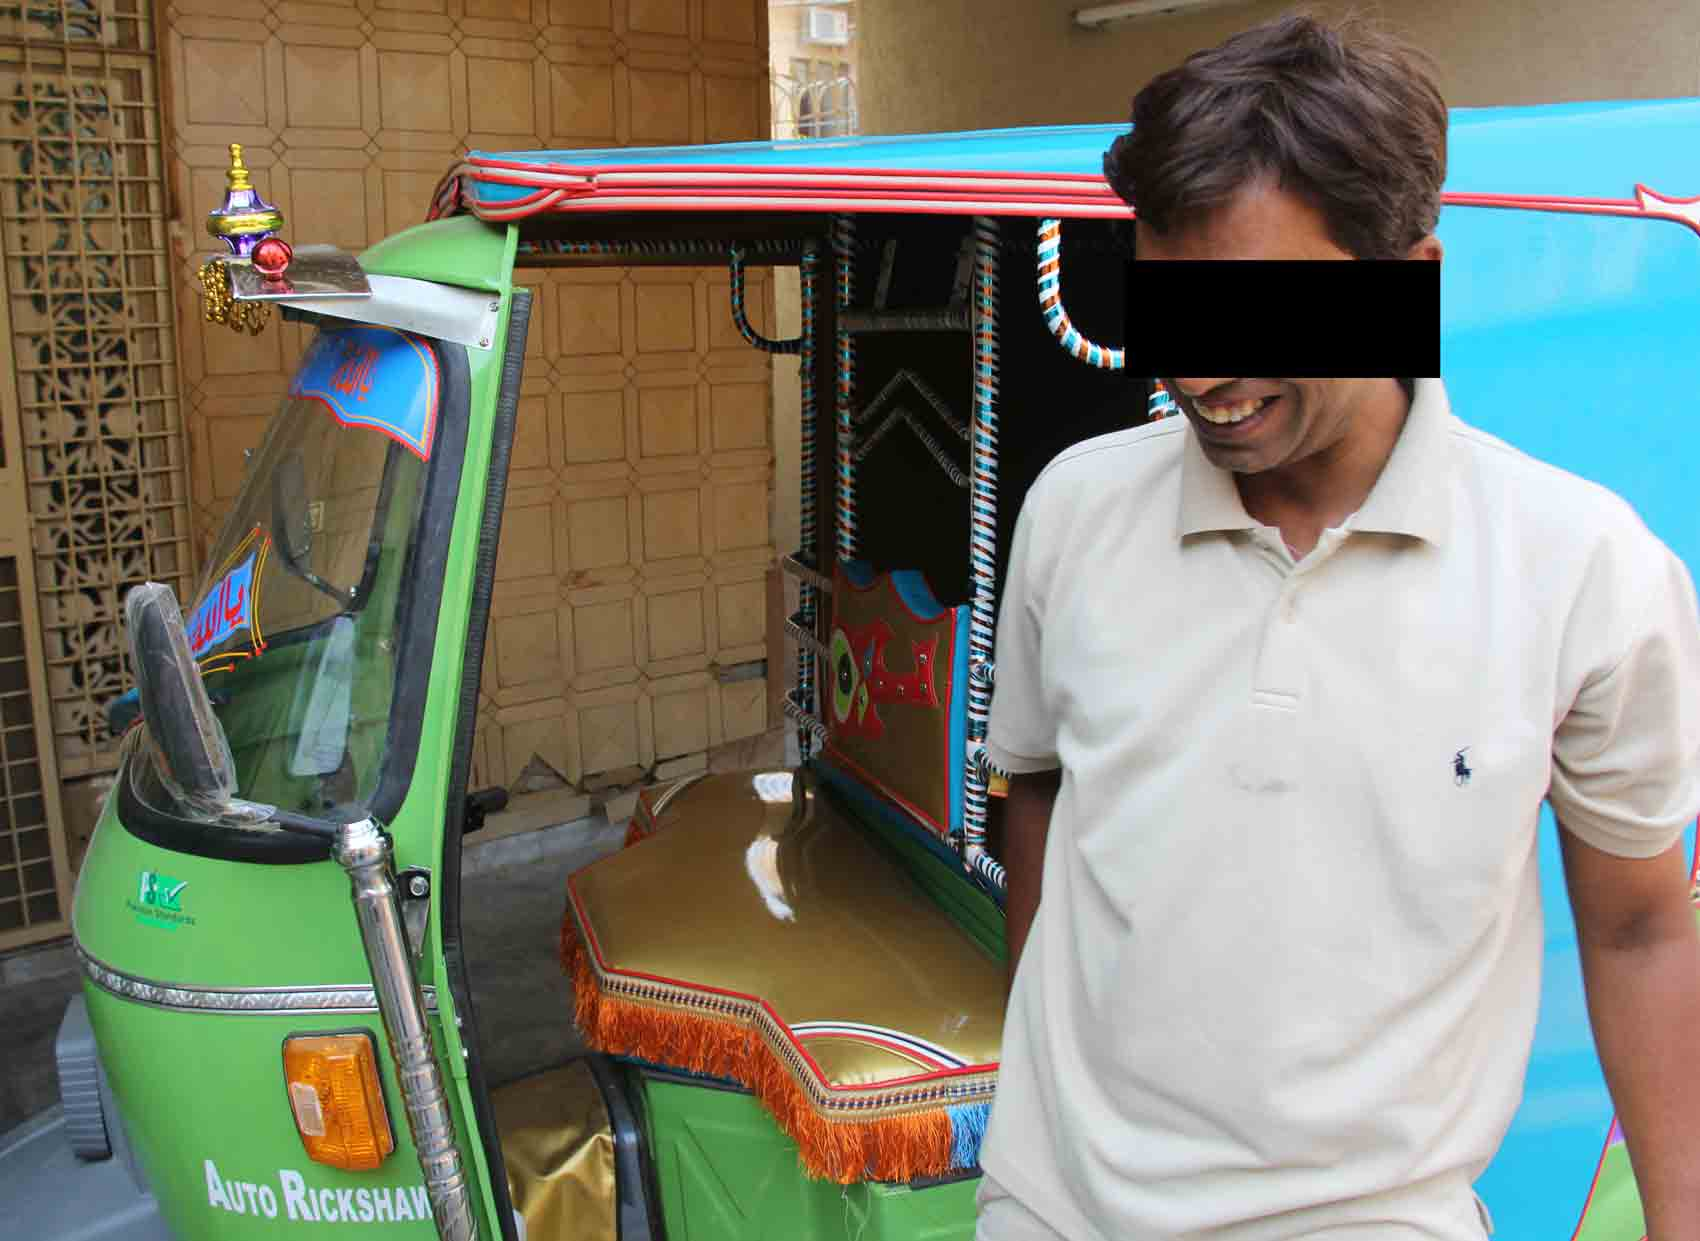 Ma'ruf was thankful for the gift of a rickshaw to help support his family.